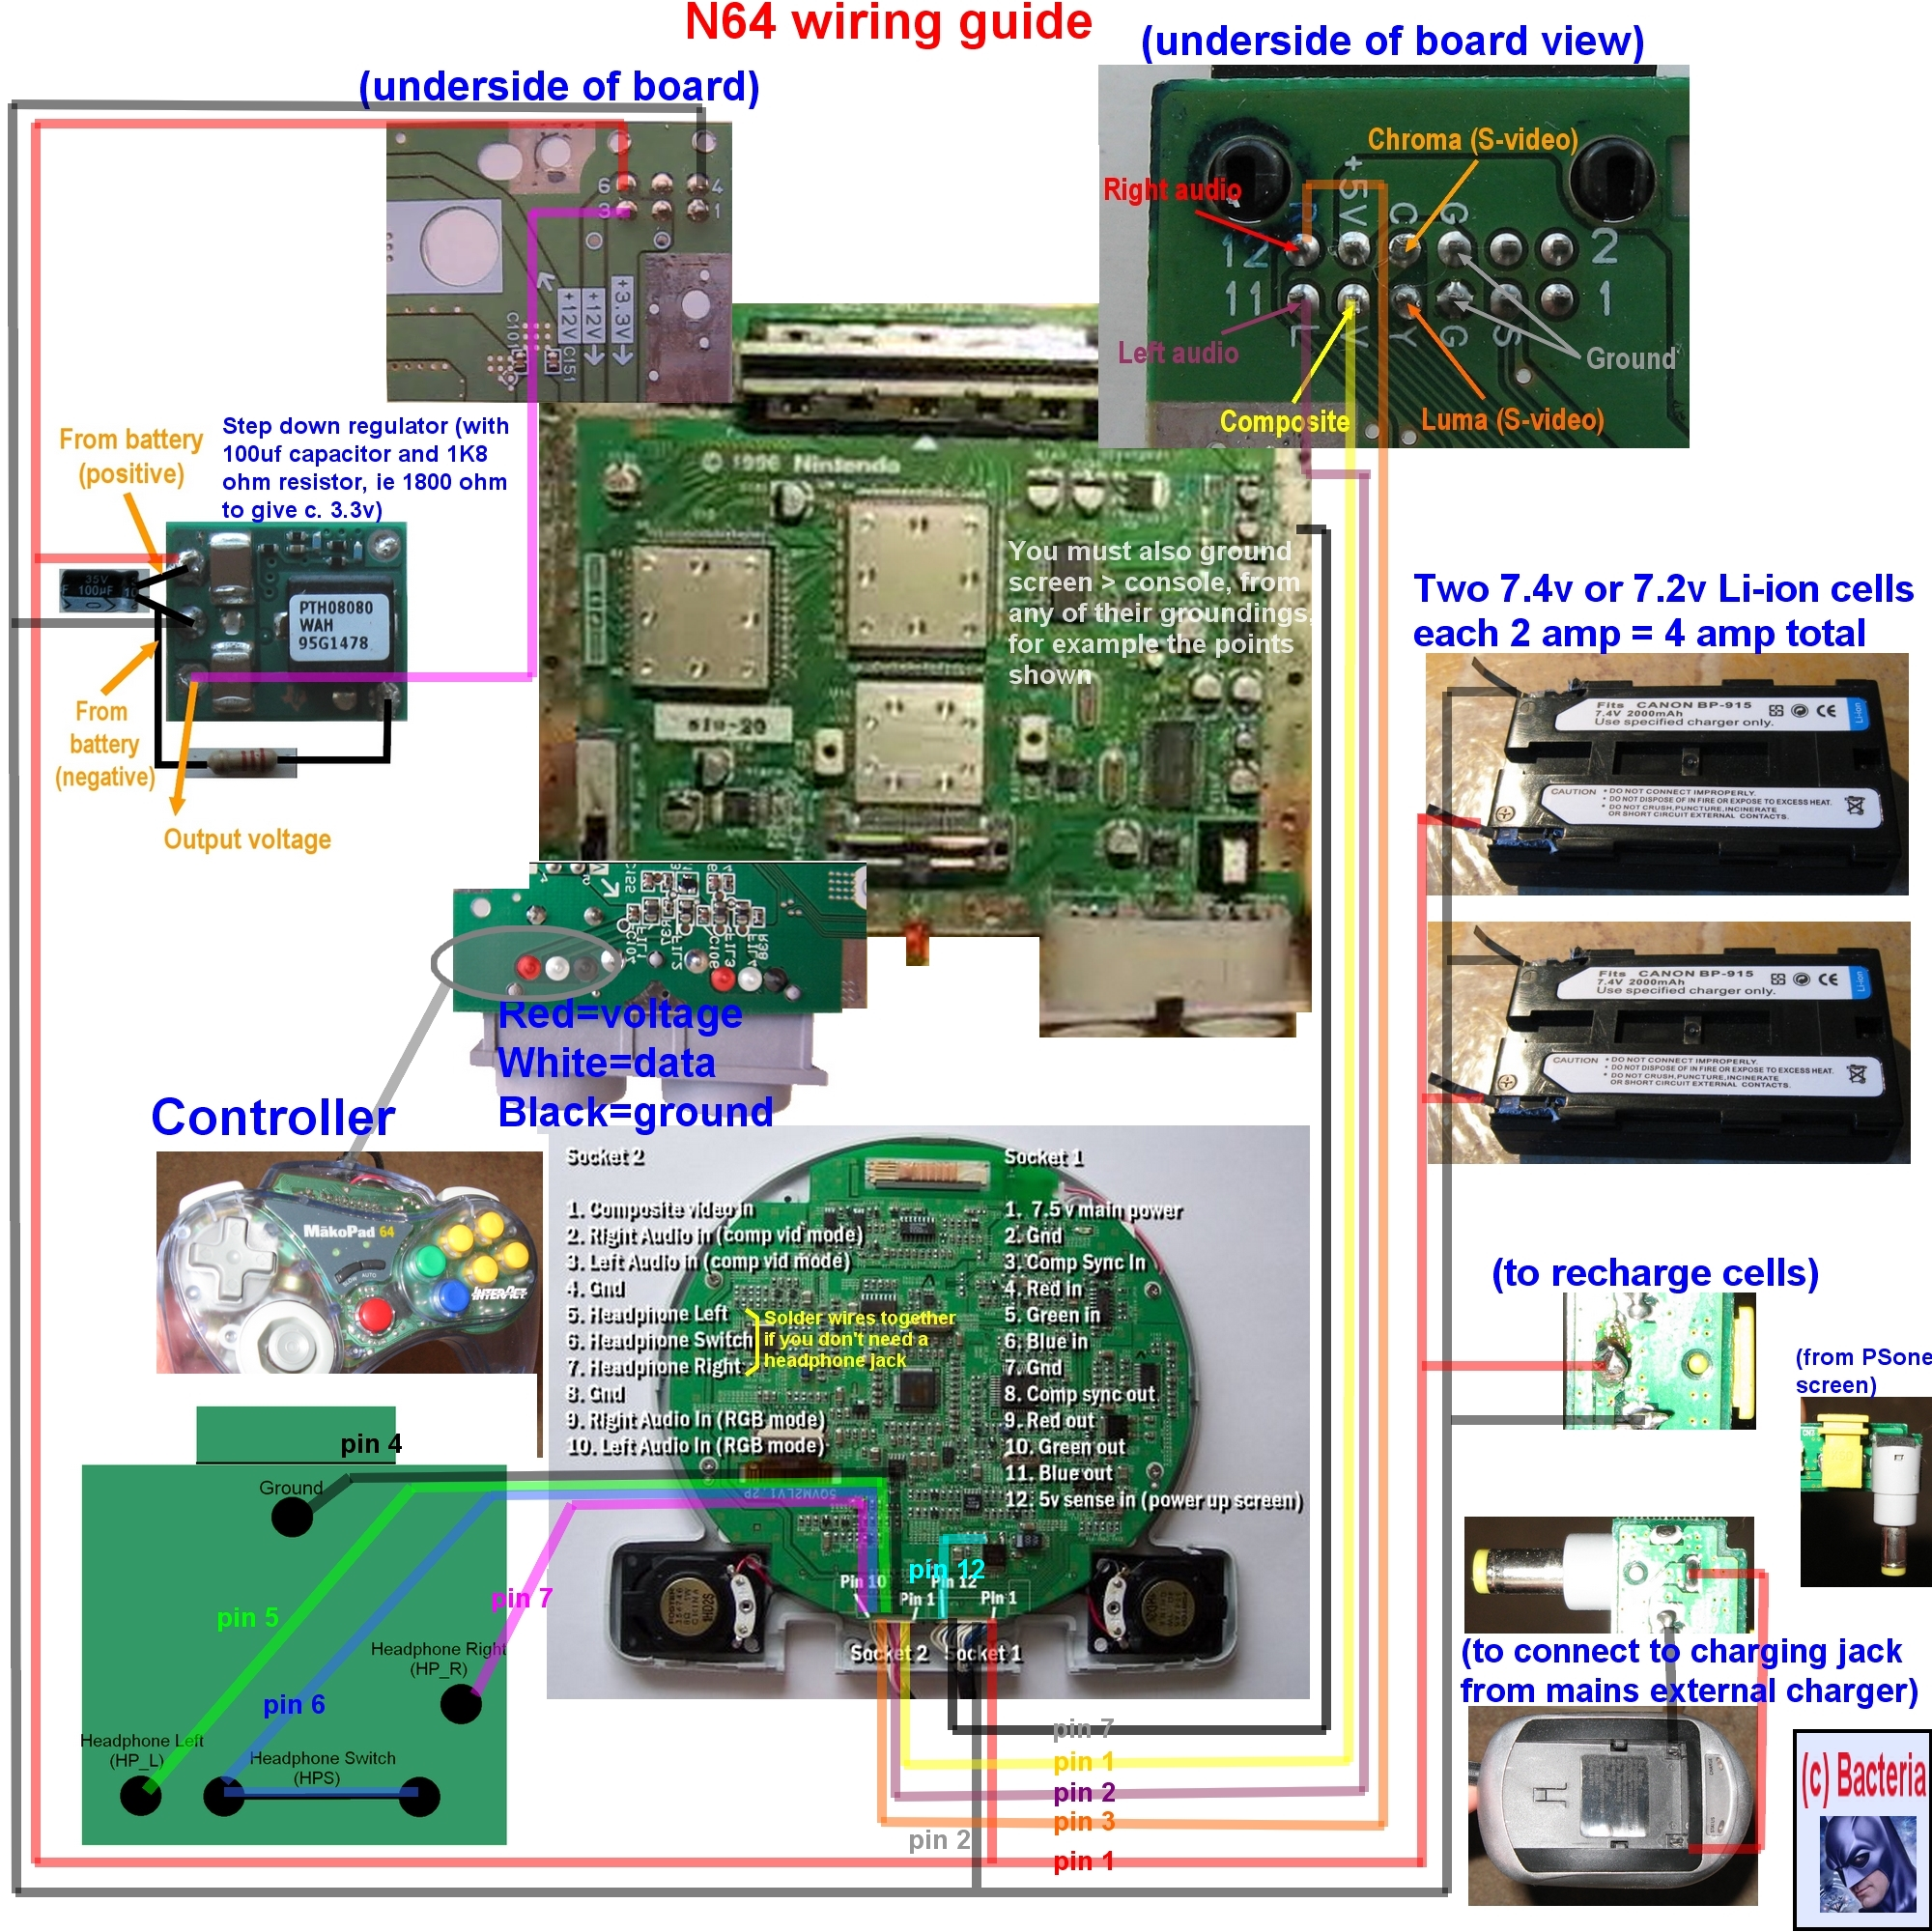 n64 wiring guide1 nintendo n64 gamecube controller wiring diagram at creativeand.co